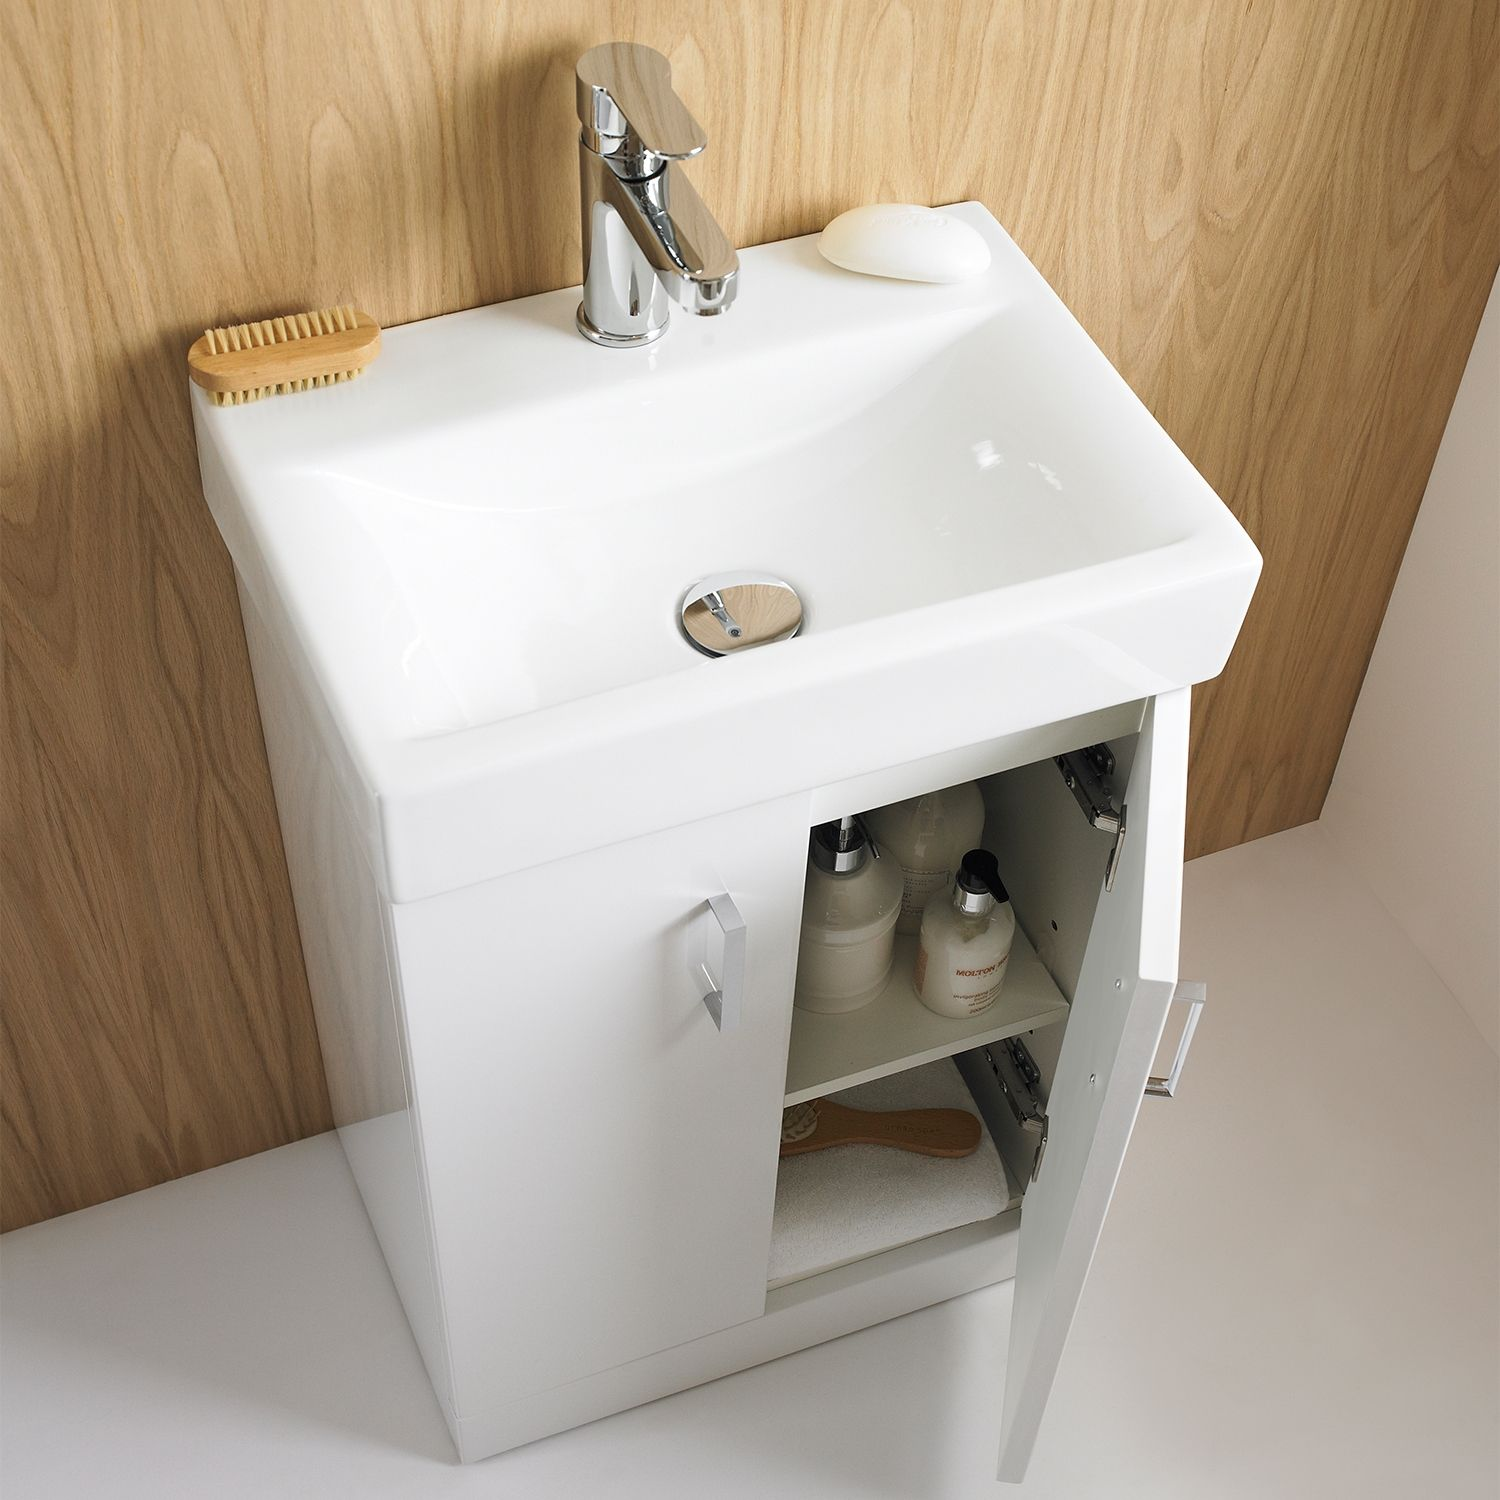 Premier Checkers White Floor Standing Vanity Unit With Basin 460mm